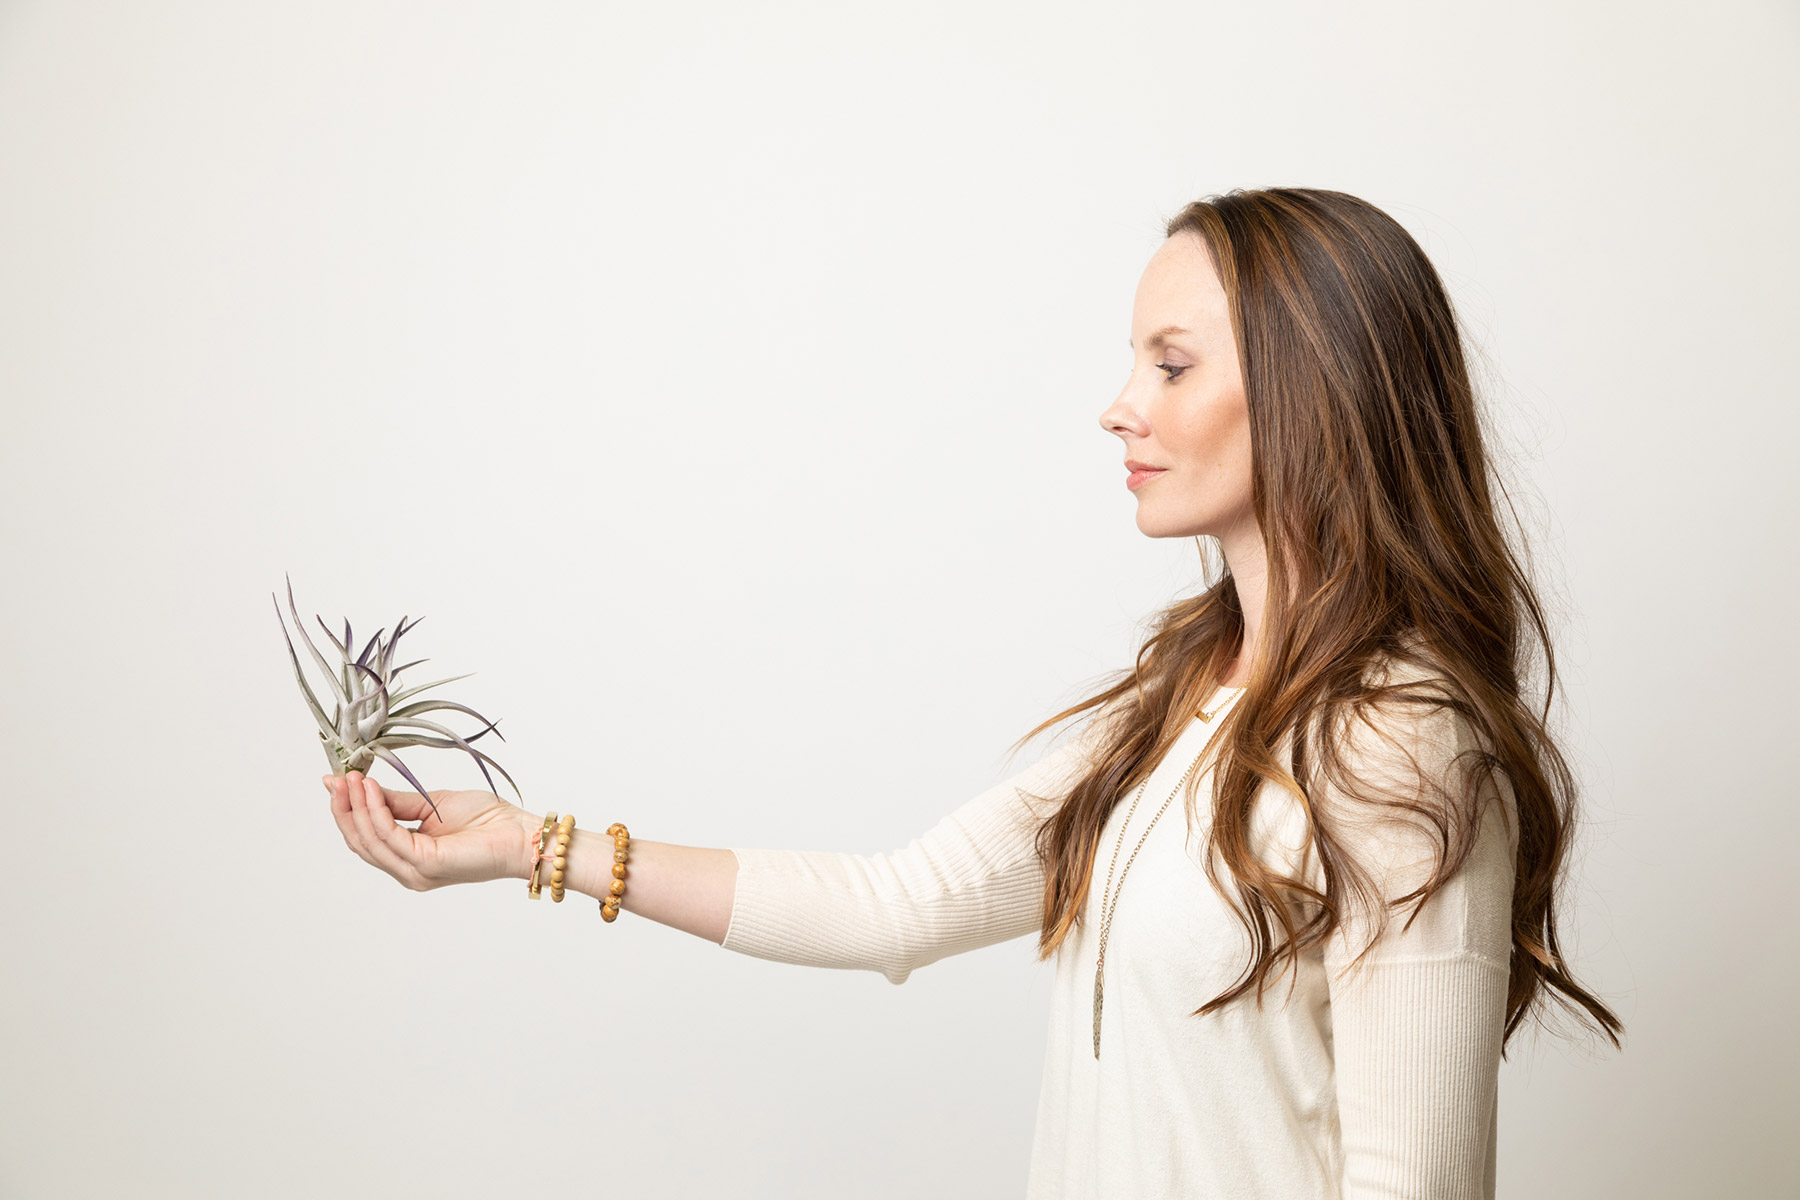 Pike Nurseries Woman with Airplant